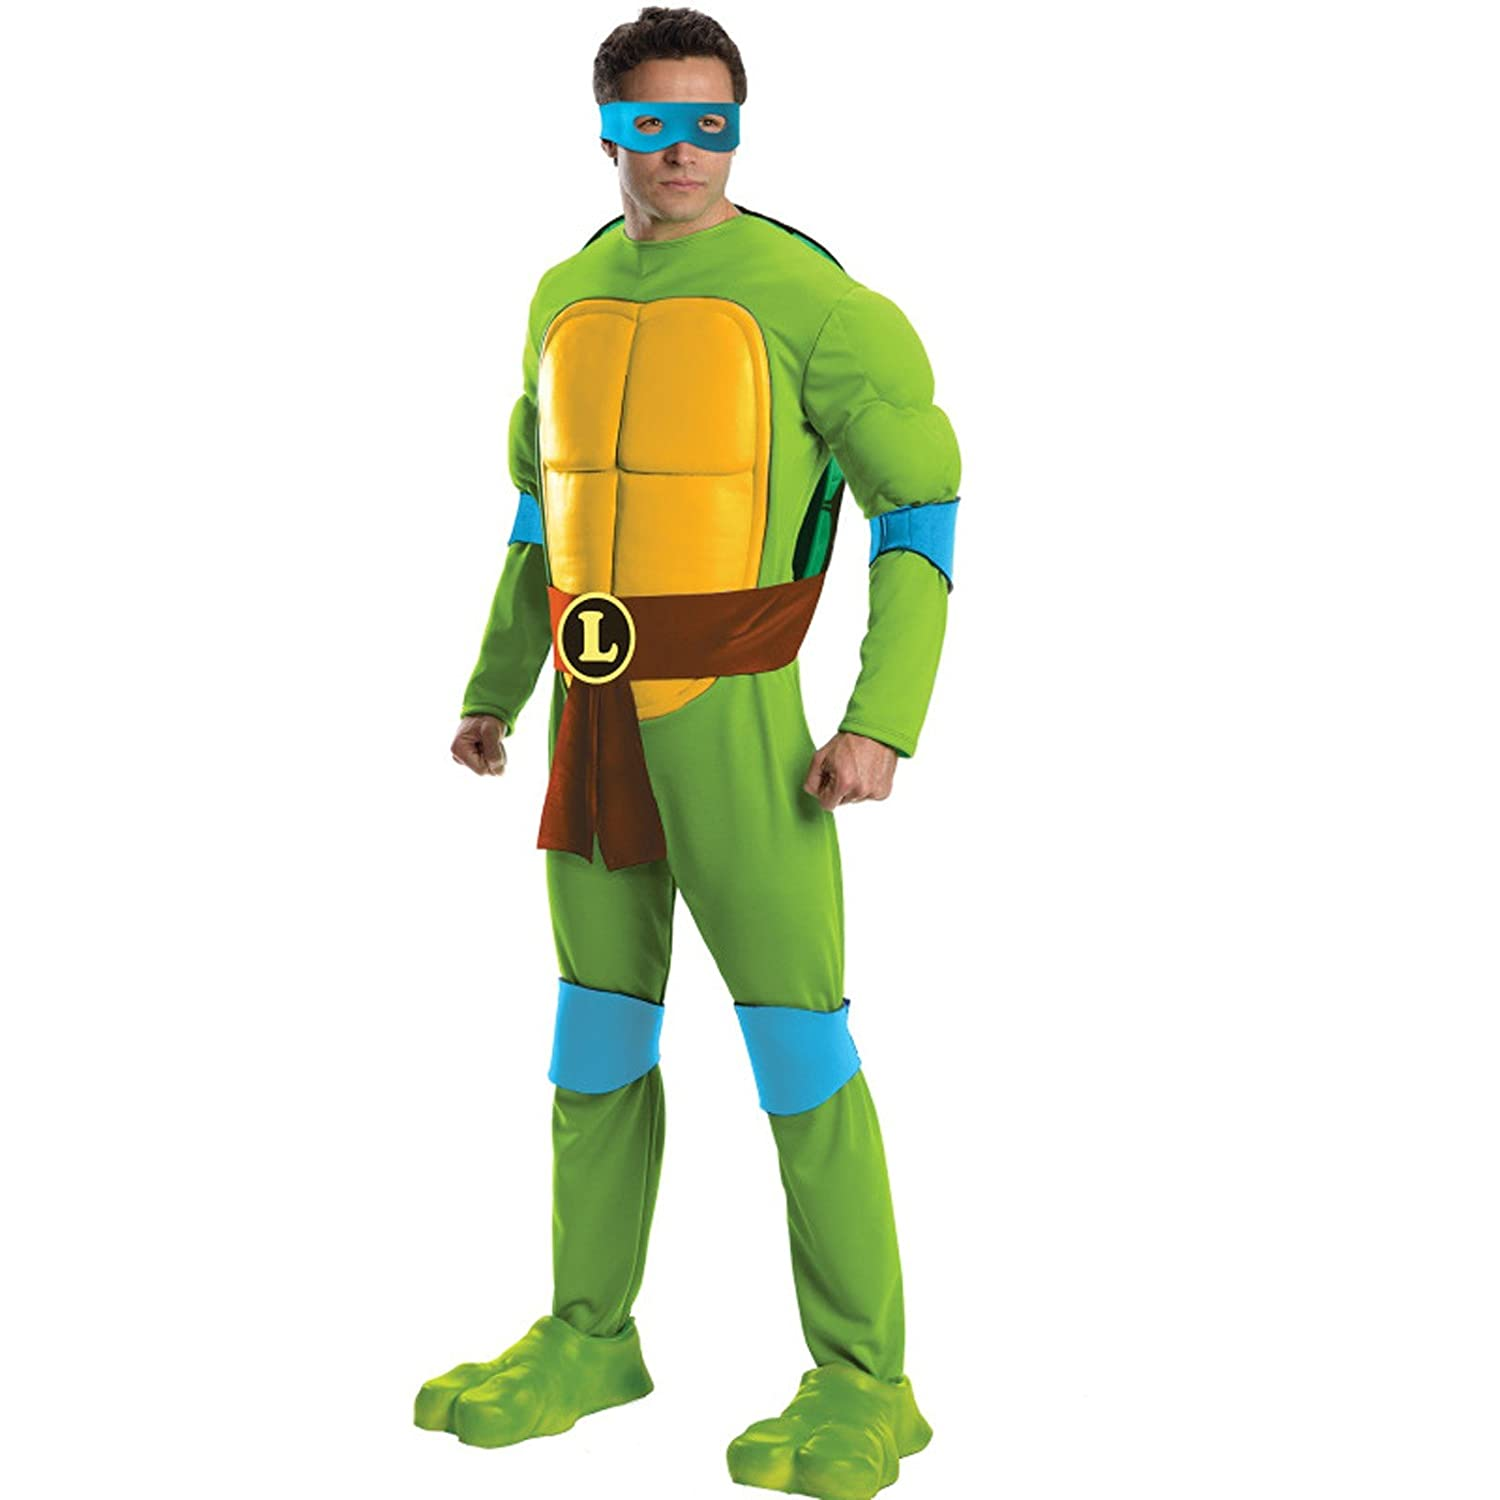 Amazon.com: Disfraz de los hombres Teenage Mutant Ninja ...